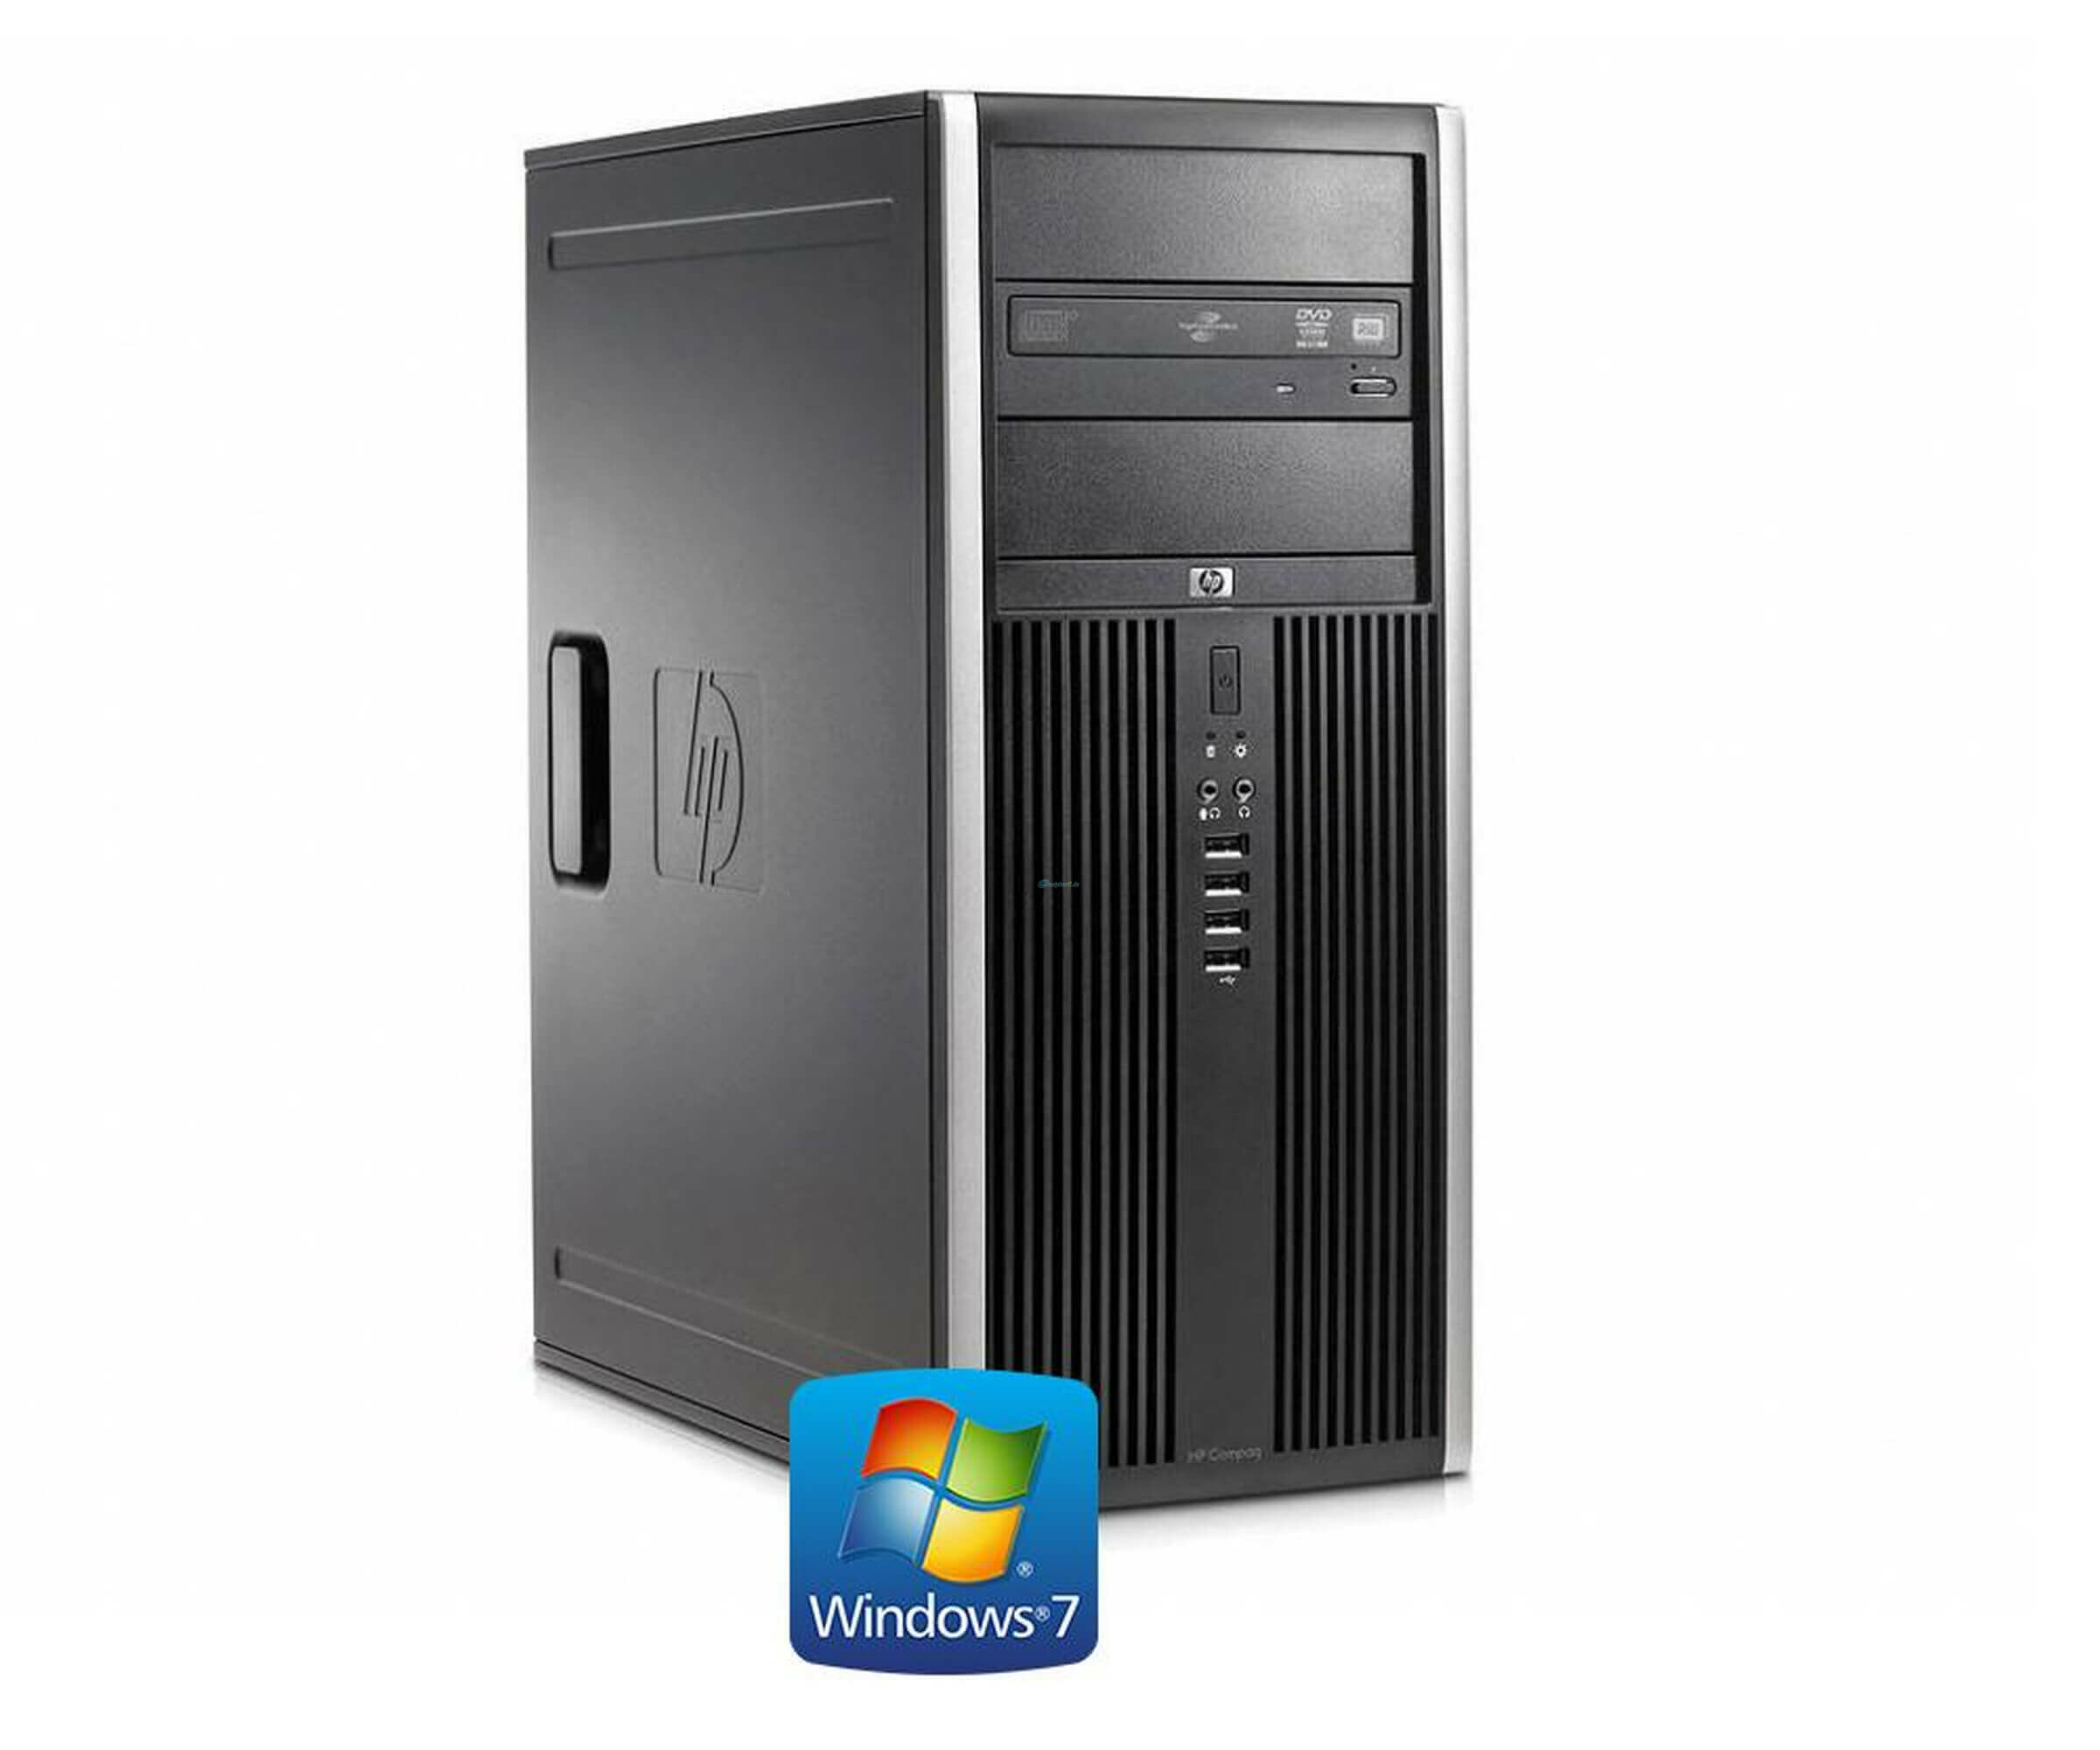 HP Compaq Elite 8100 CMT - Intel Core  i3-530 2,93 GHz - RAM 2 GB - 160 GB HDD - DVD-RW - Windows 7